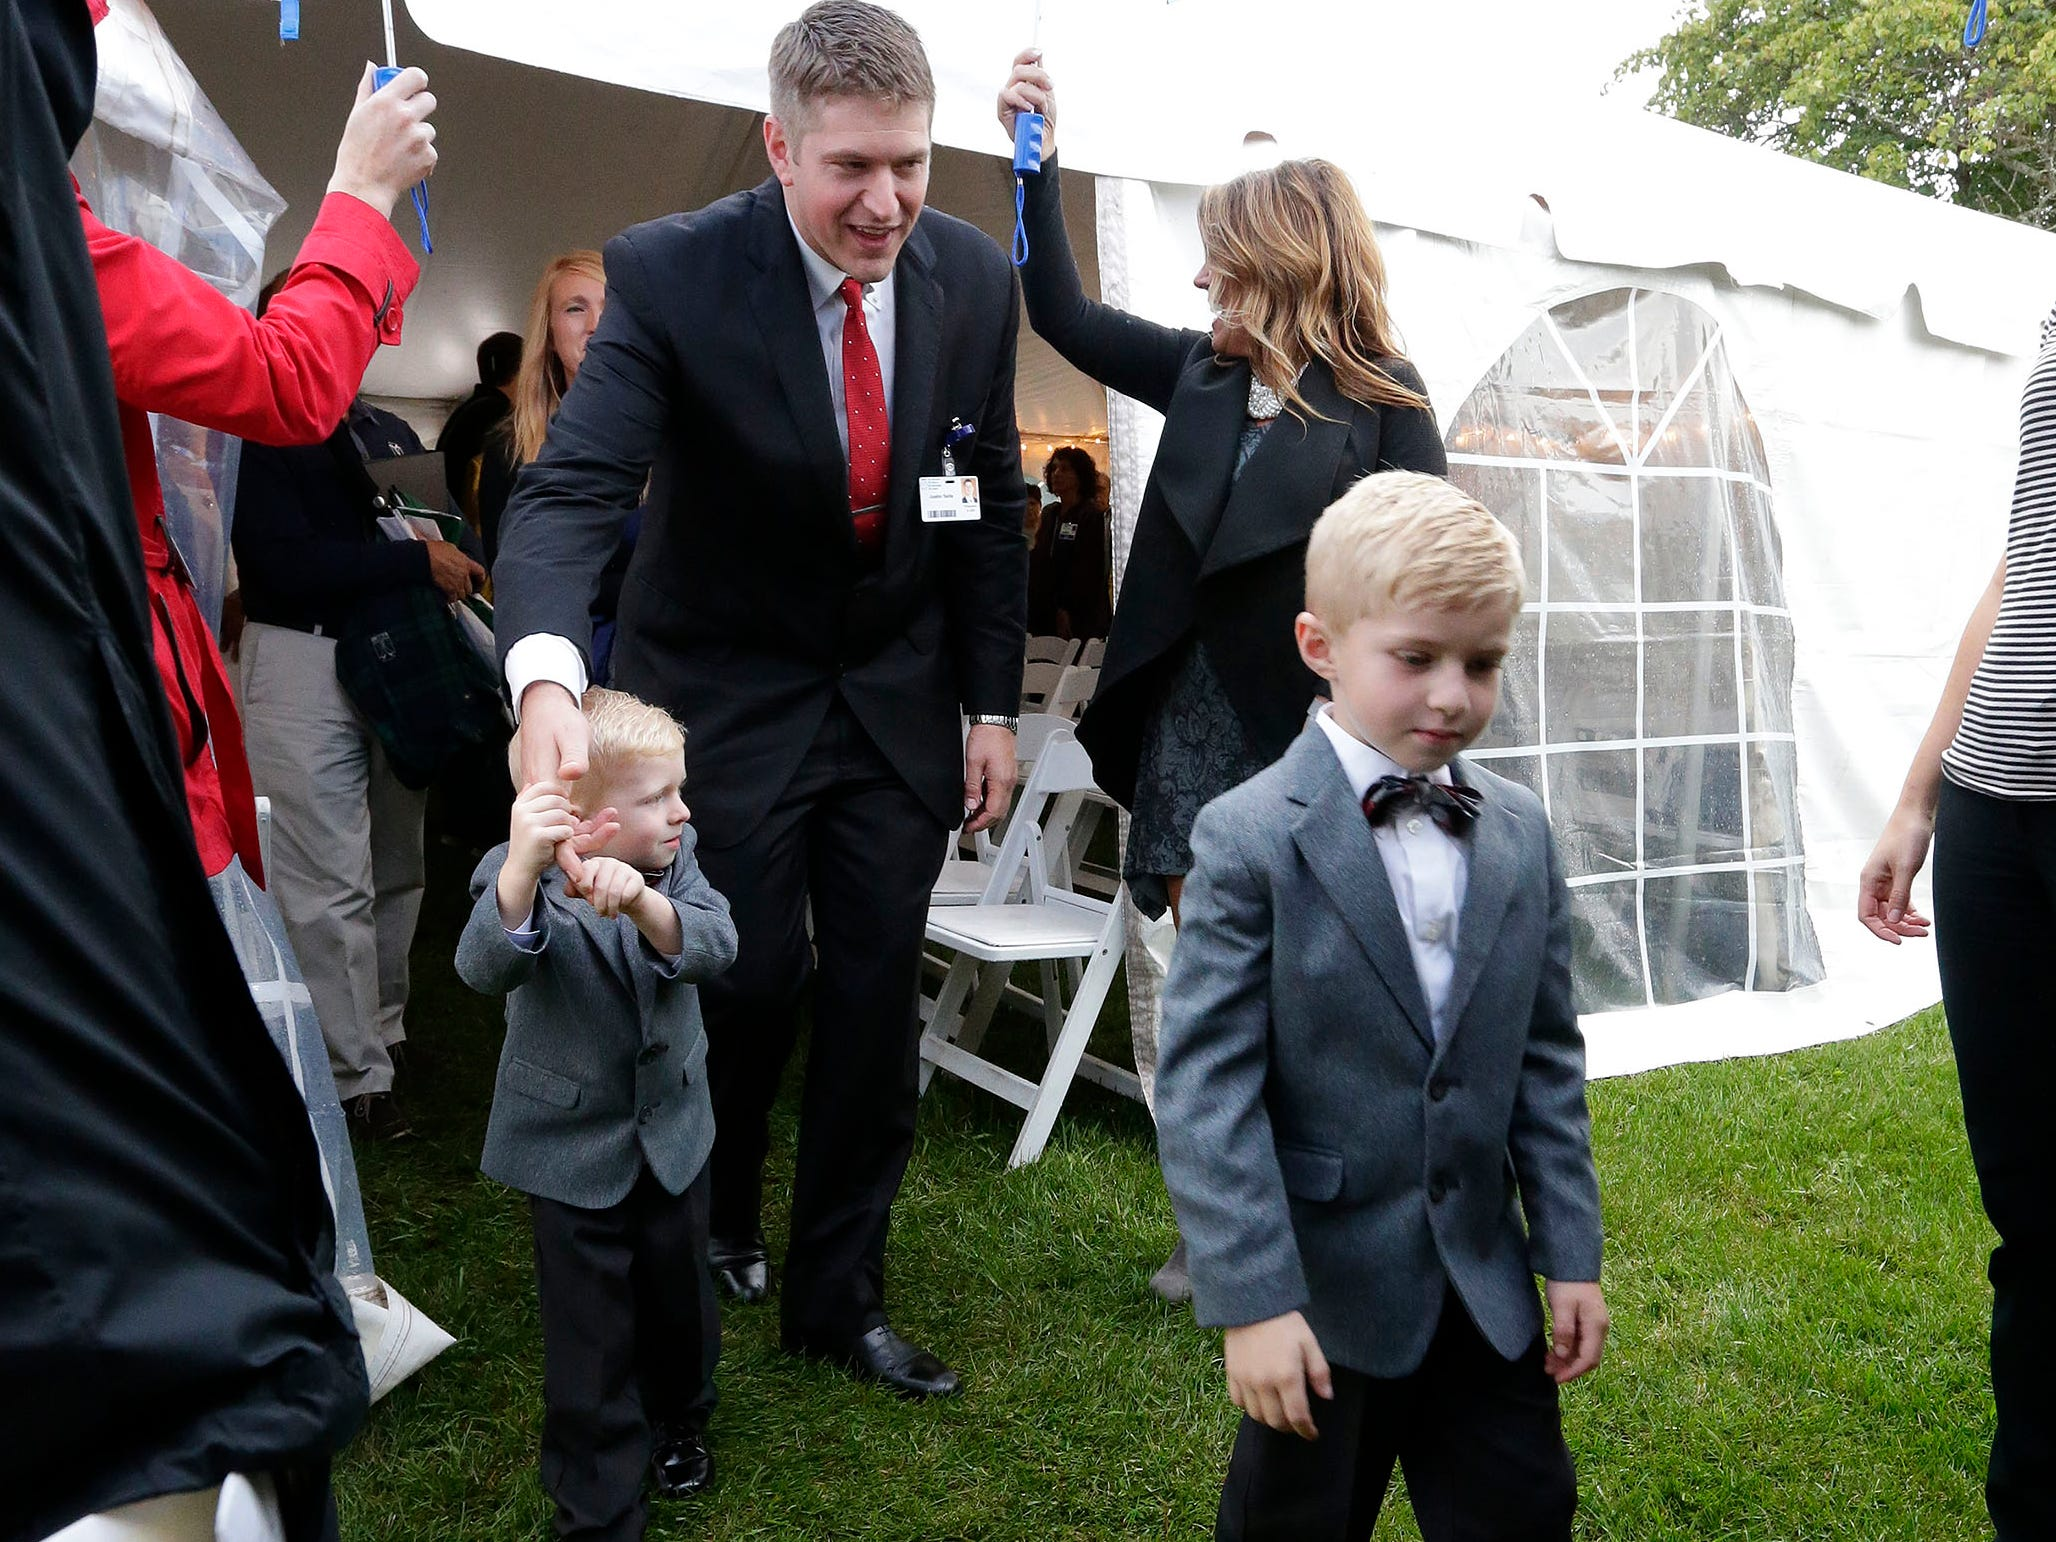 The family of HSHS St. Nicholas Hospital CEO Justin Selle walk under protection of umbrellas as they arrive for the Mass of Celebration, Wednesday, September 19, 2018, in Sheboygan, Wis.